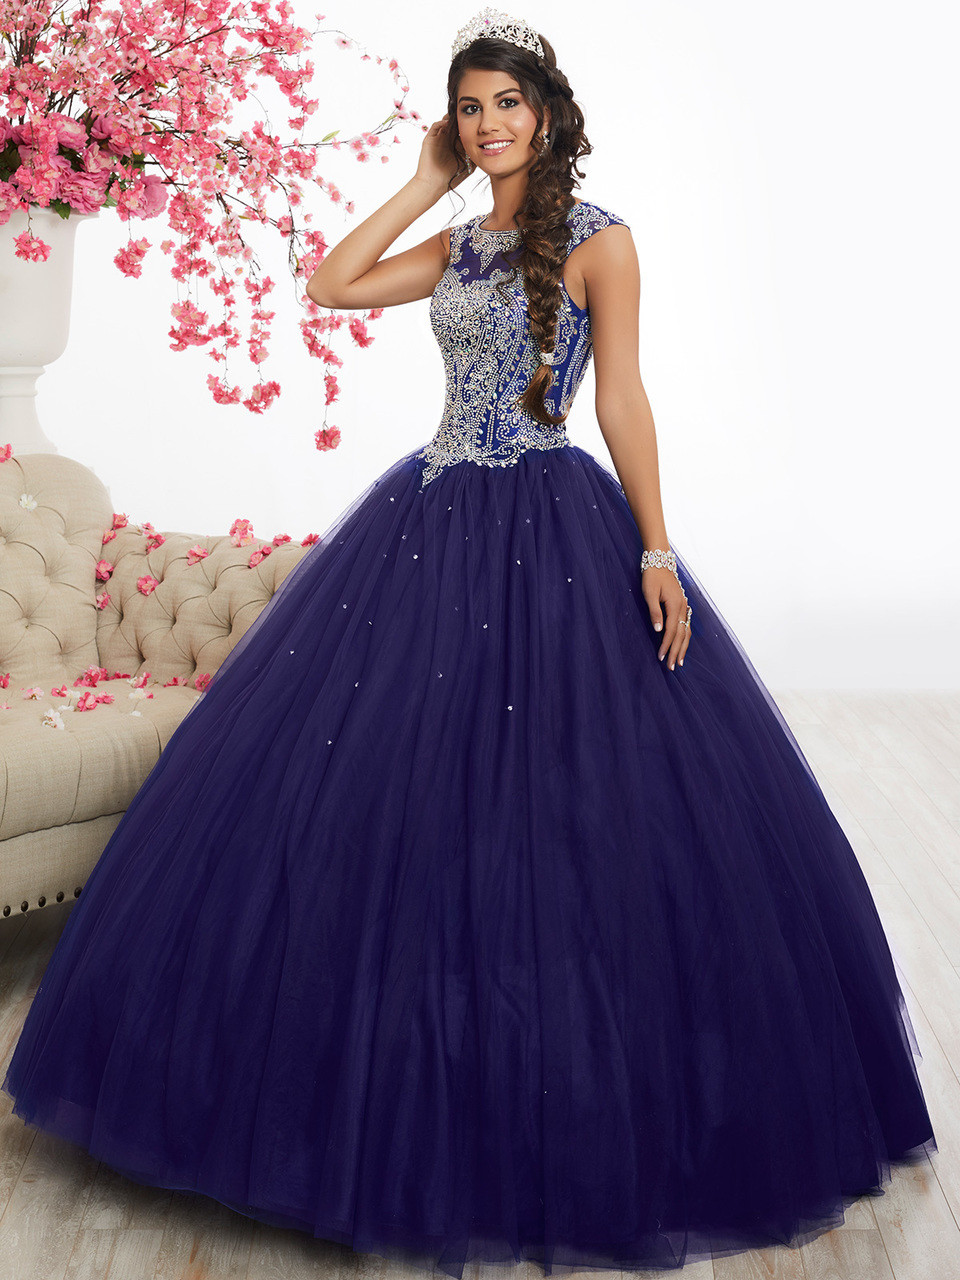 Cap Sleeve Ball Gown Fiesta Quinceanera Dress 56338 ...